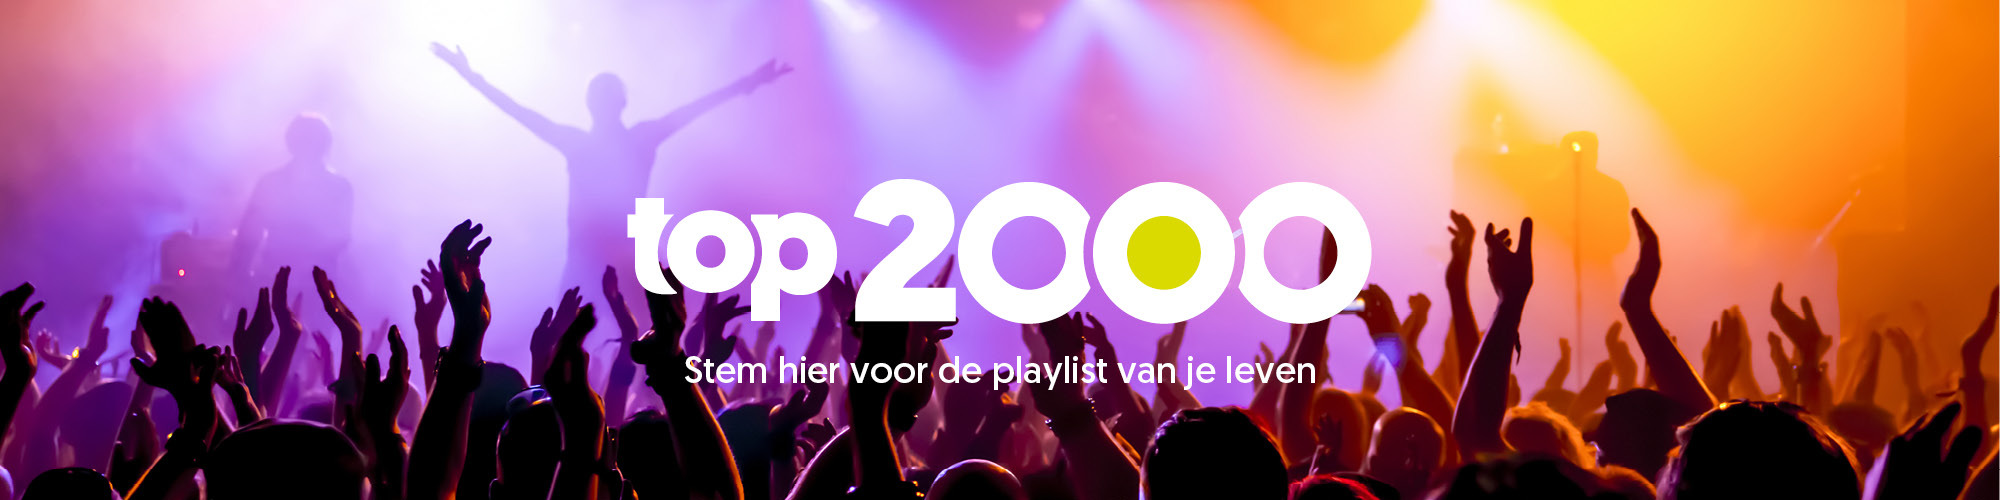 Joe carrousel top2000 finaal stem 7